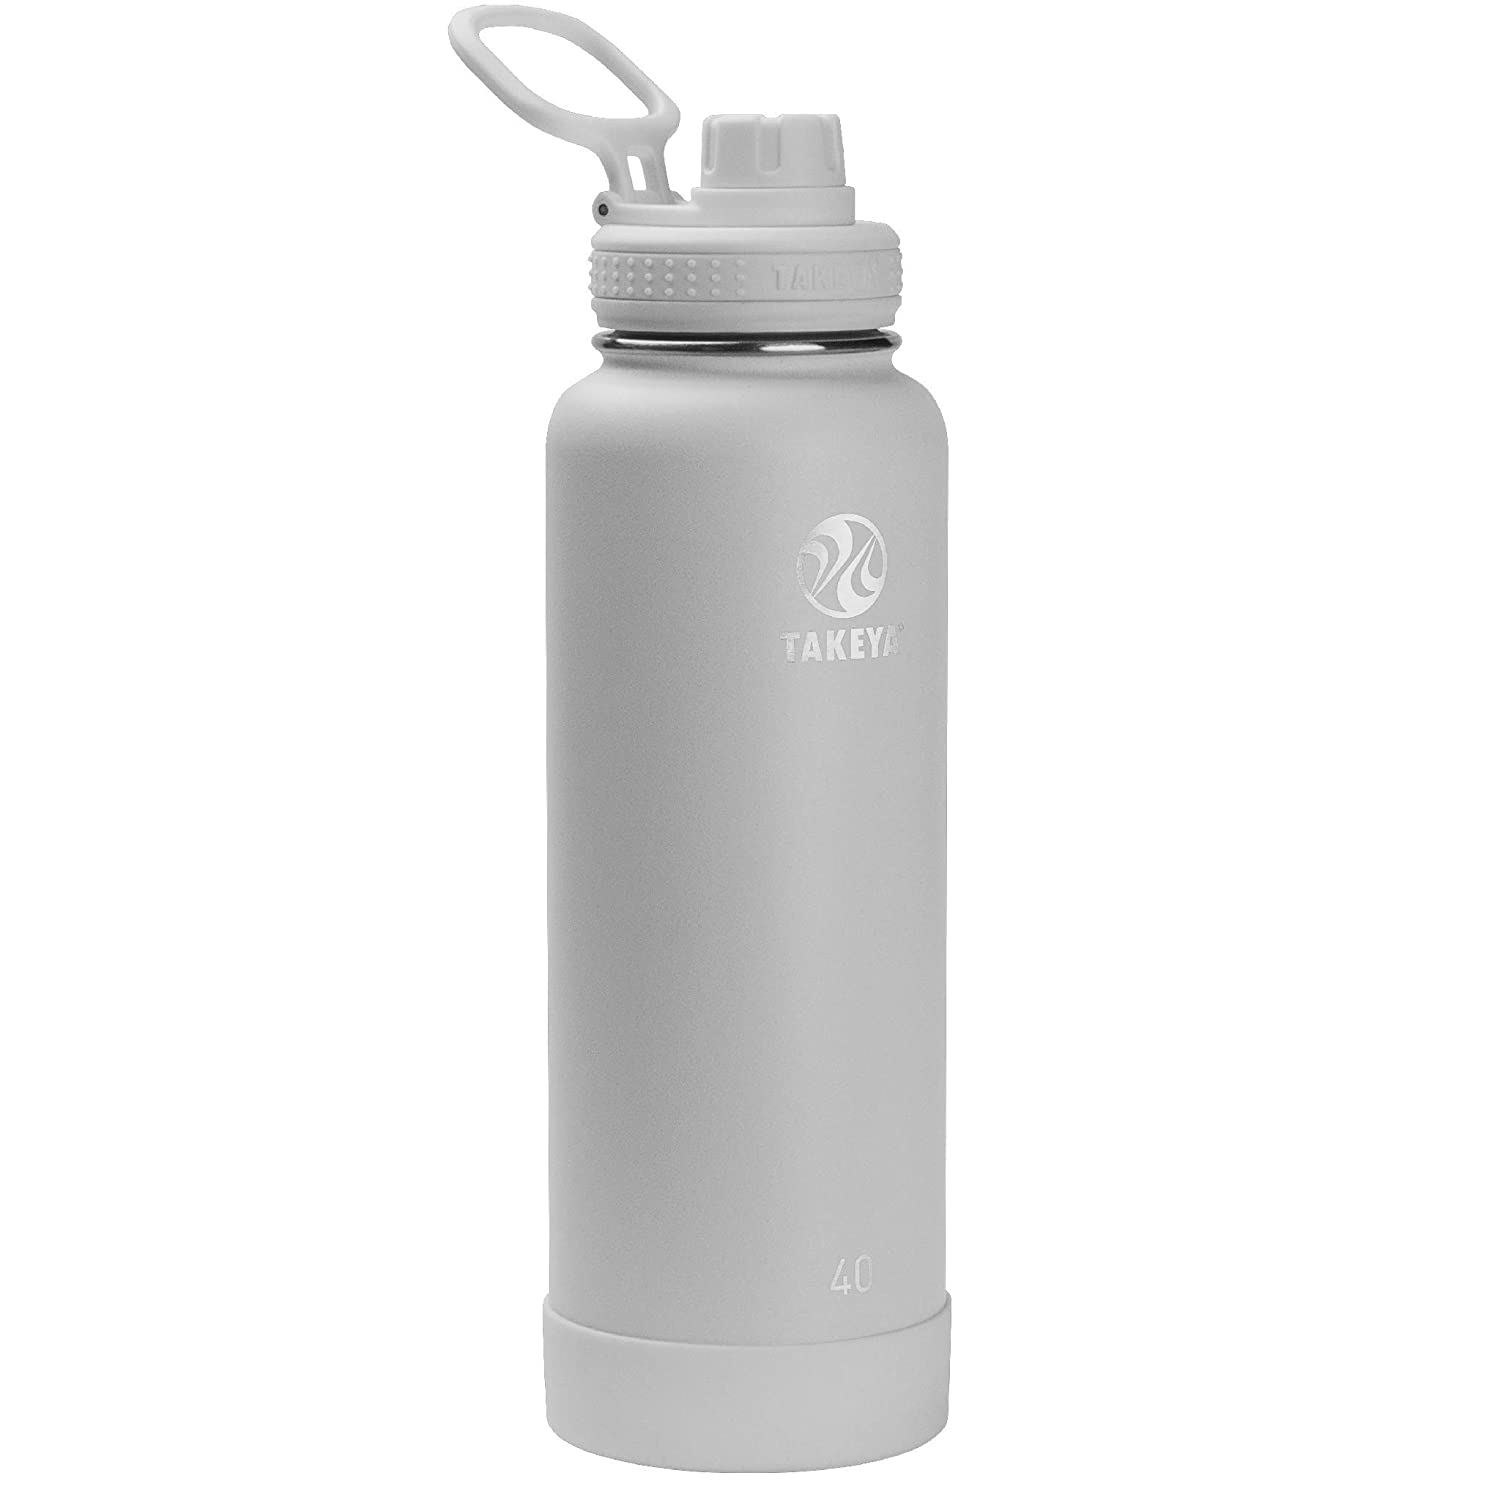 Pebble 40 oz Takeya 51112 Actives Stainless Steel Insulated Water Bottle with Straw Lid 64 oz